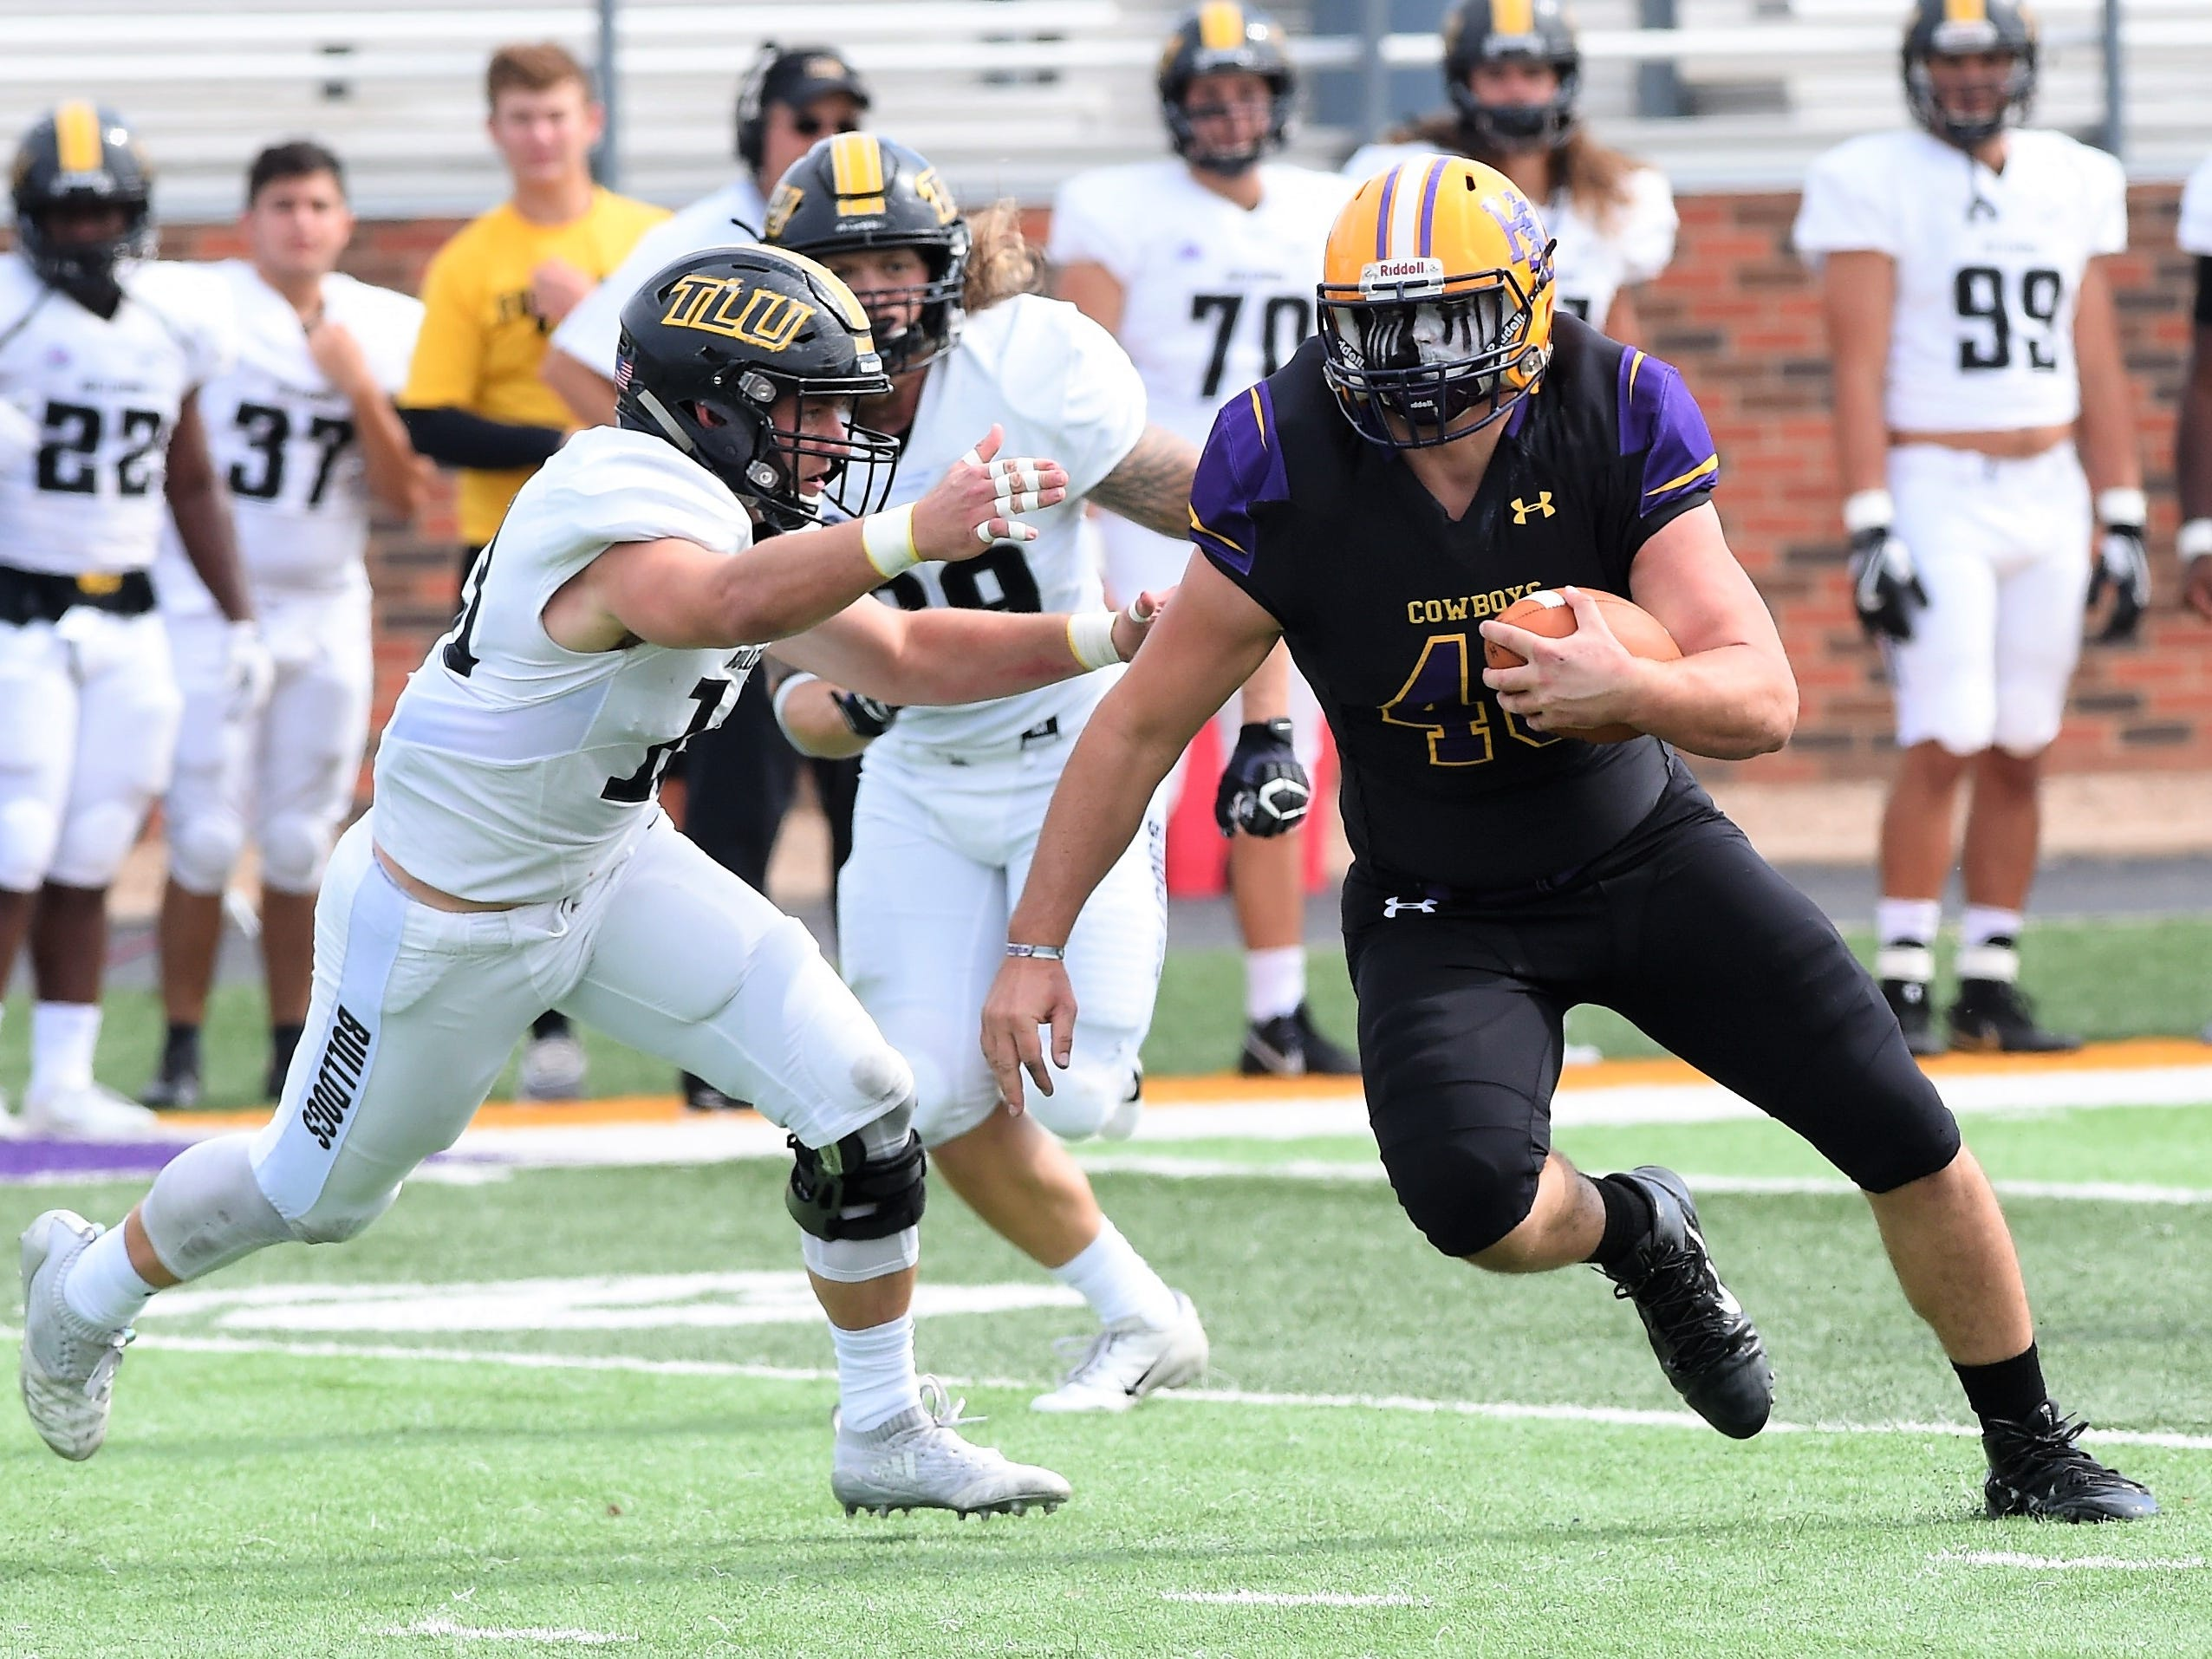 Hardin-Simmons tight end Hayden Day (48) runs after a catch against Texas Lutheran at Shelton Stadium on Saturday, Oct. 20, 2018.